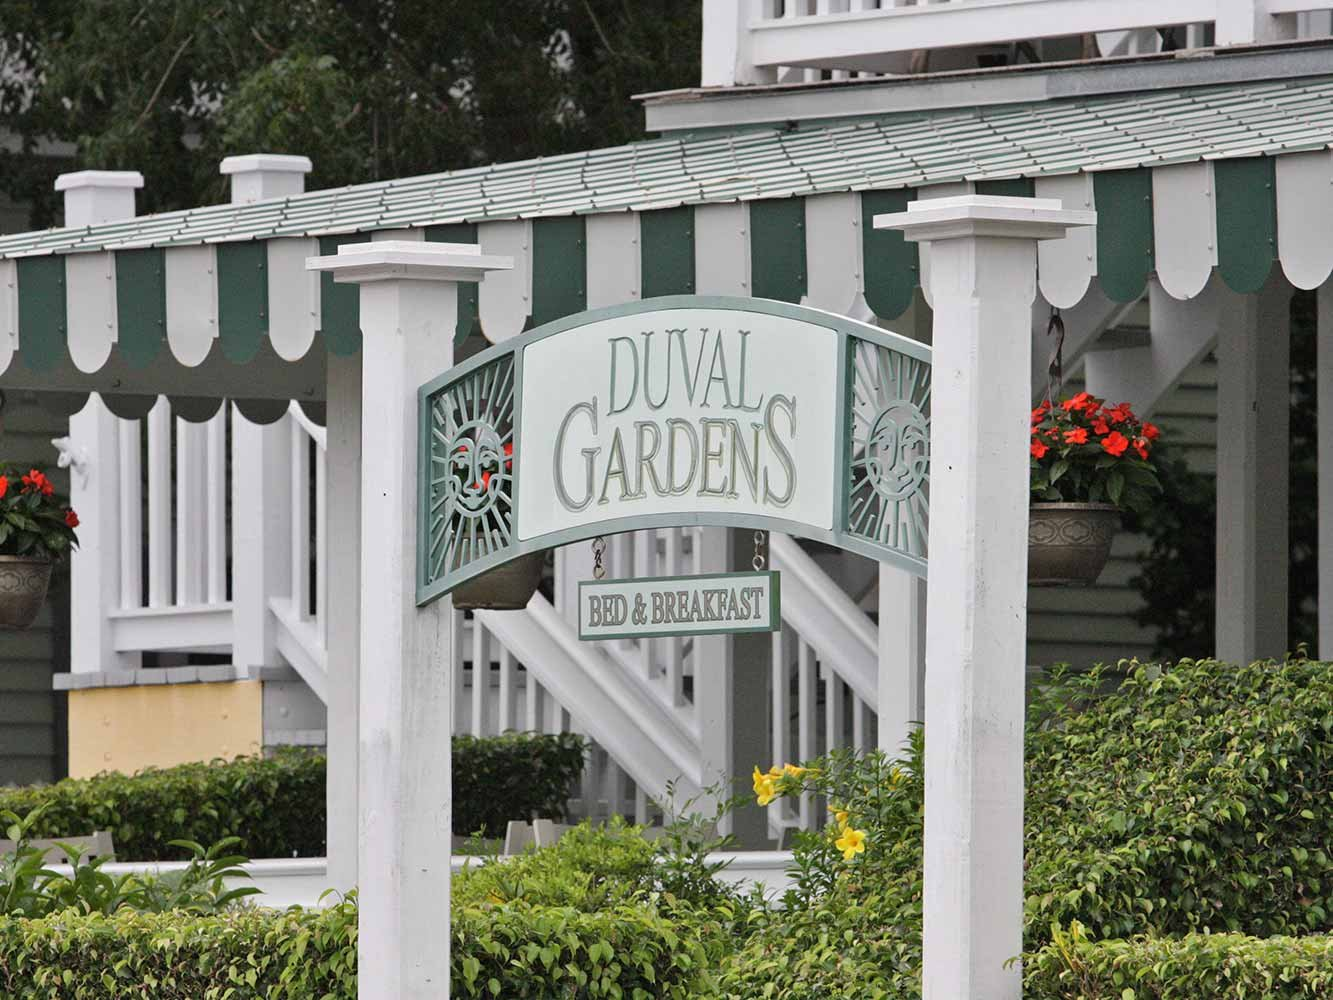 Duval Gardens Bed & Breakfast